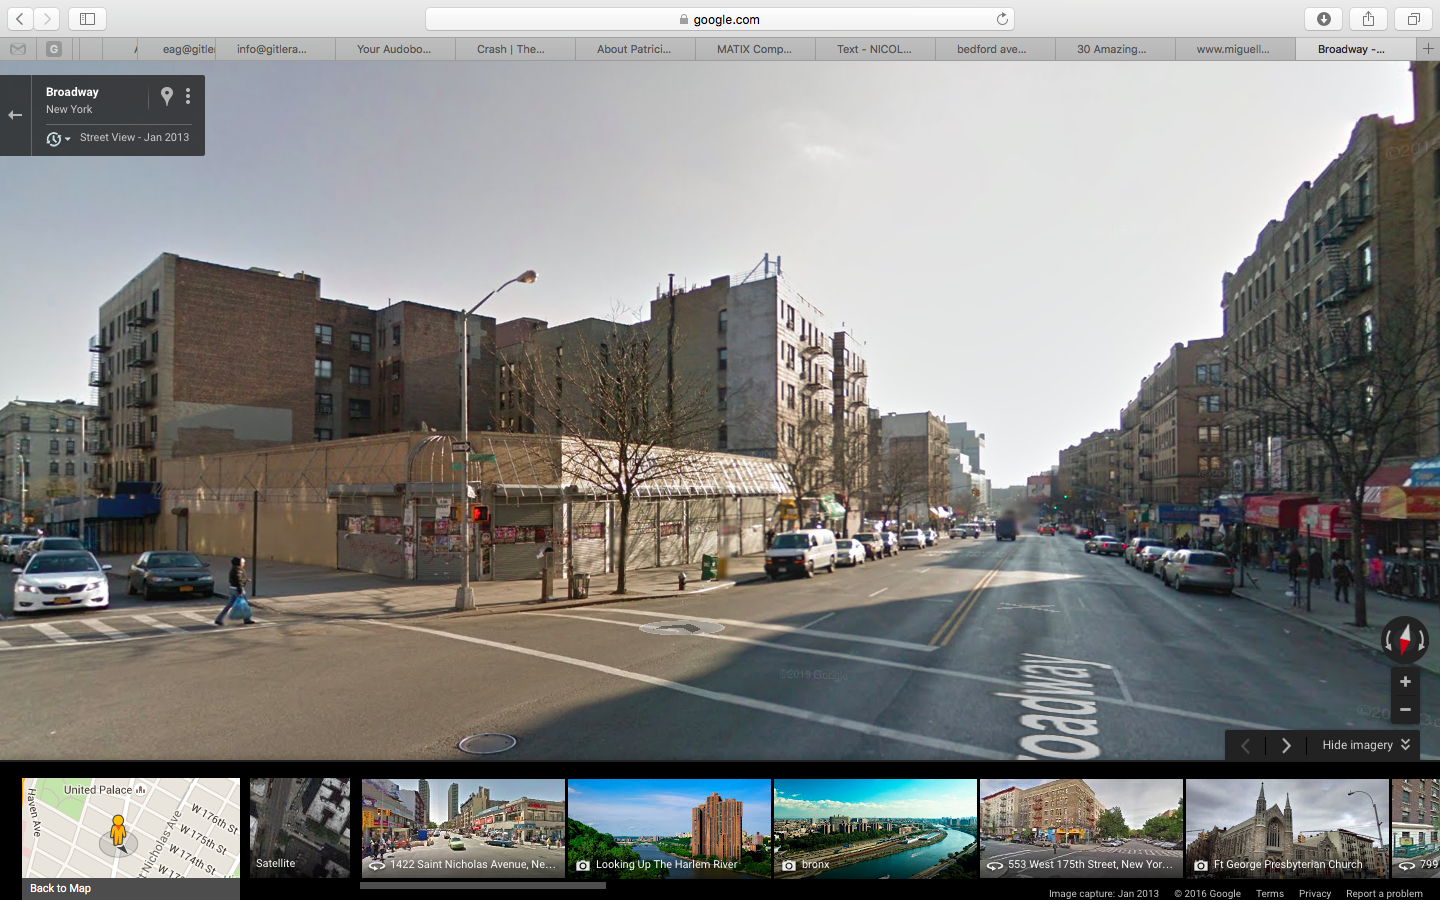 broadway - 172 and 173 4/4